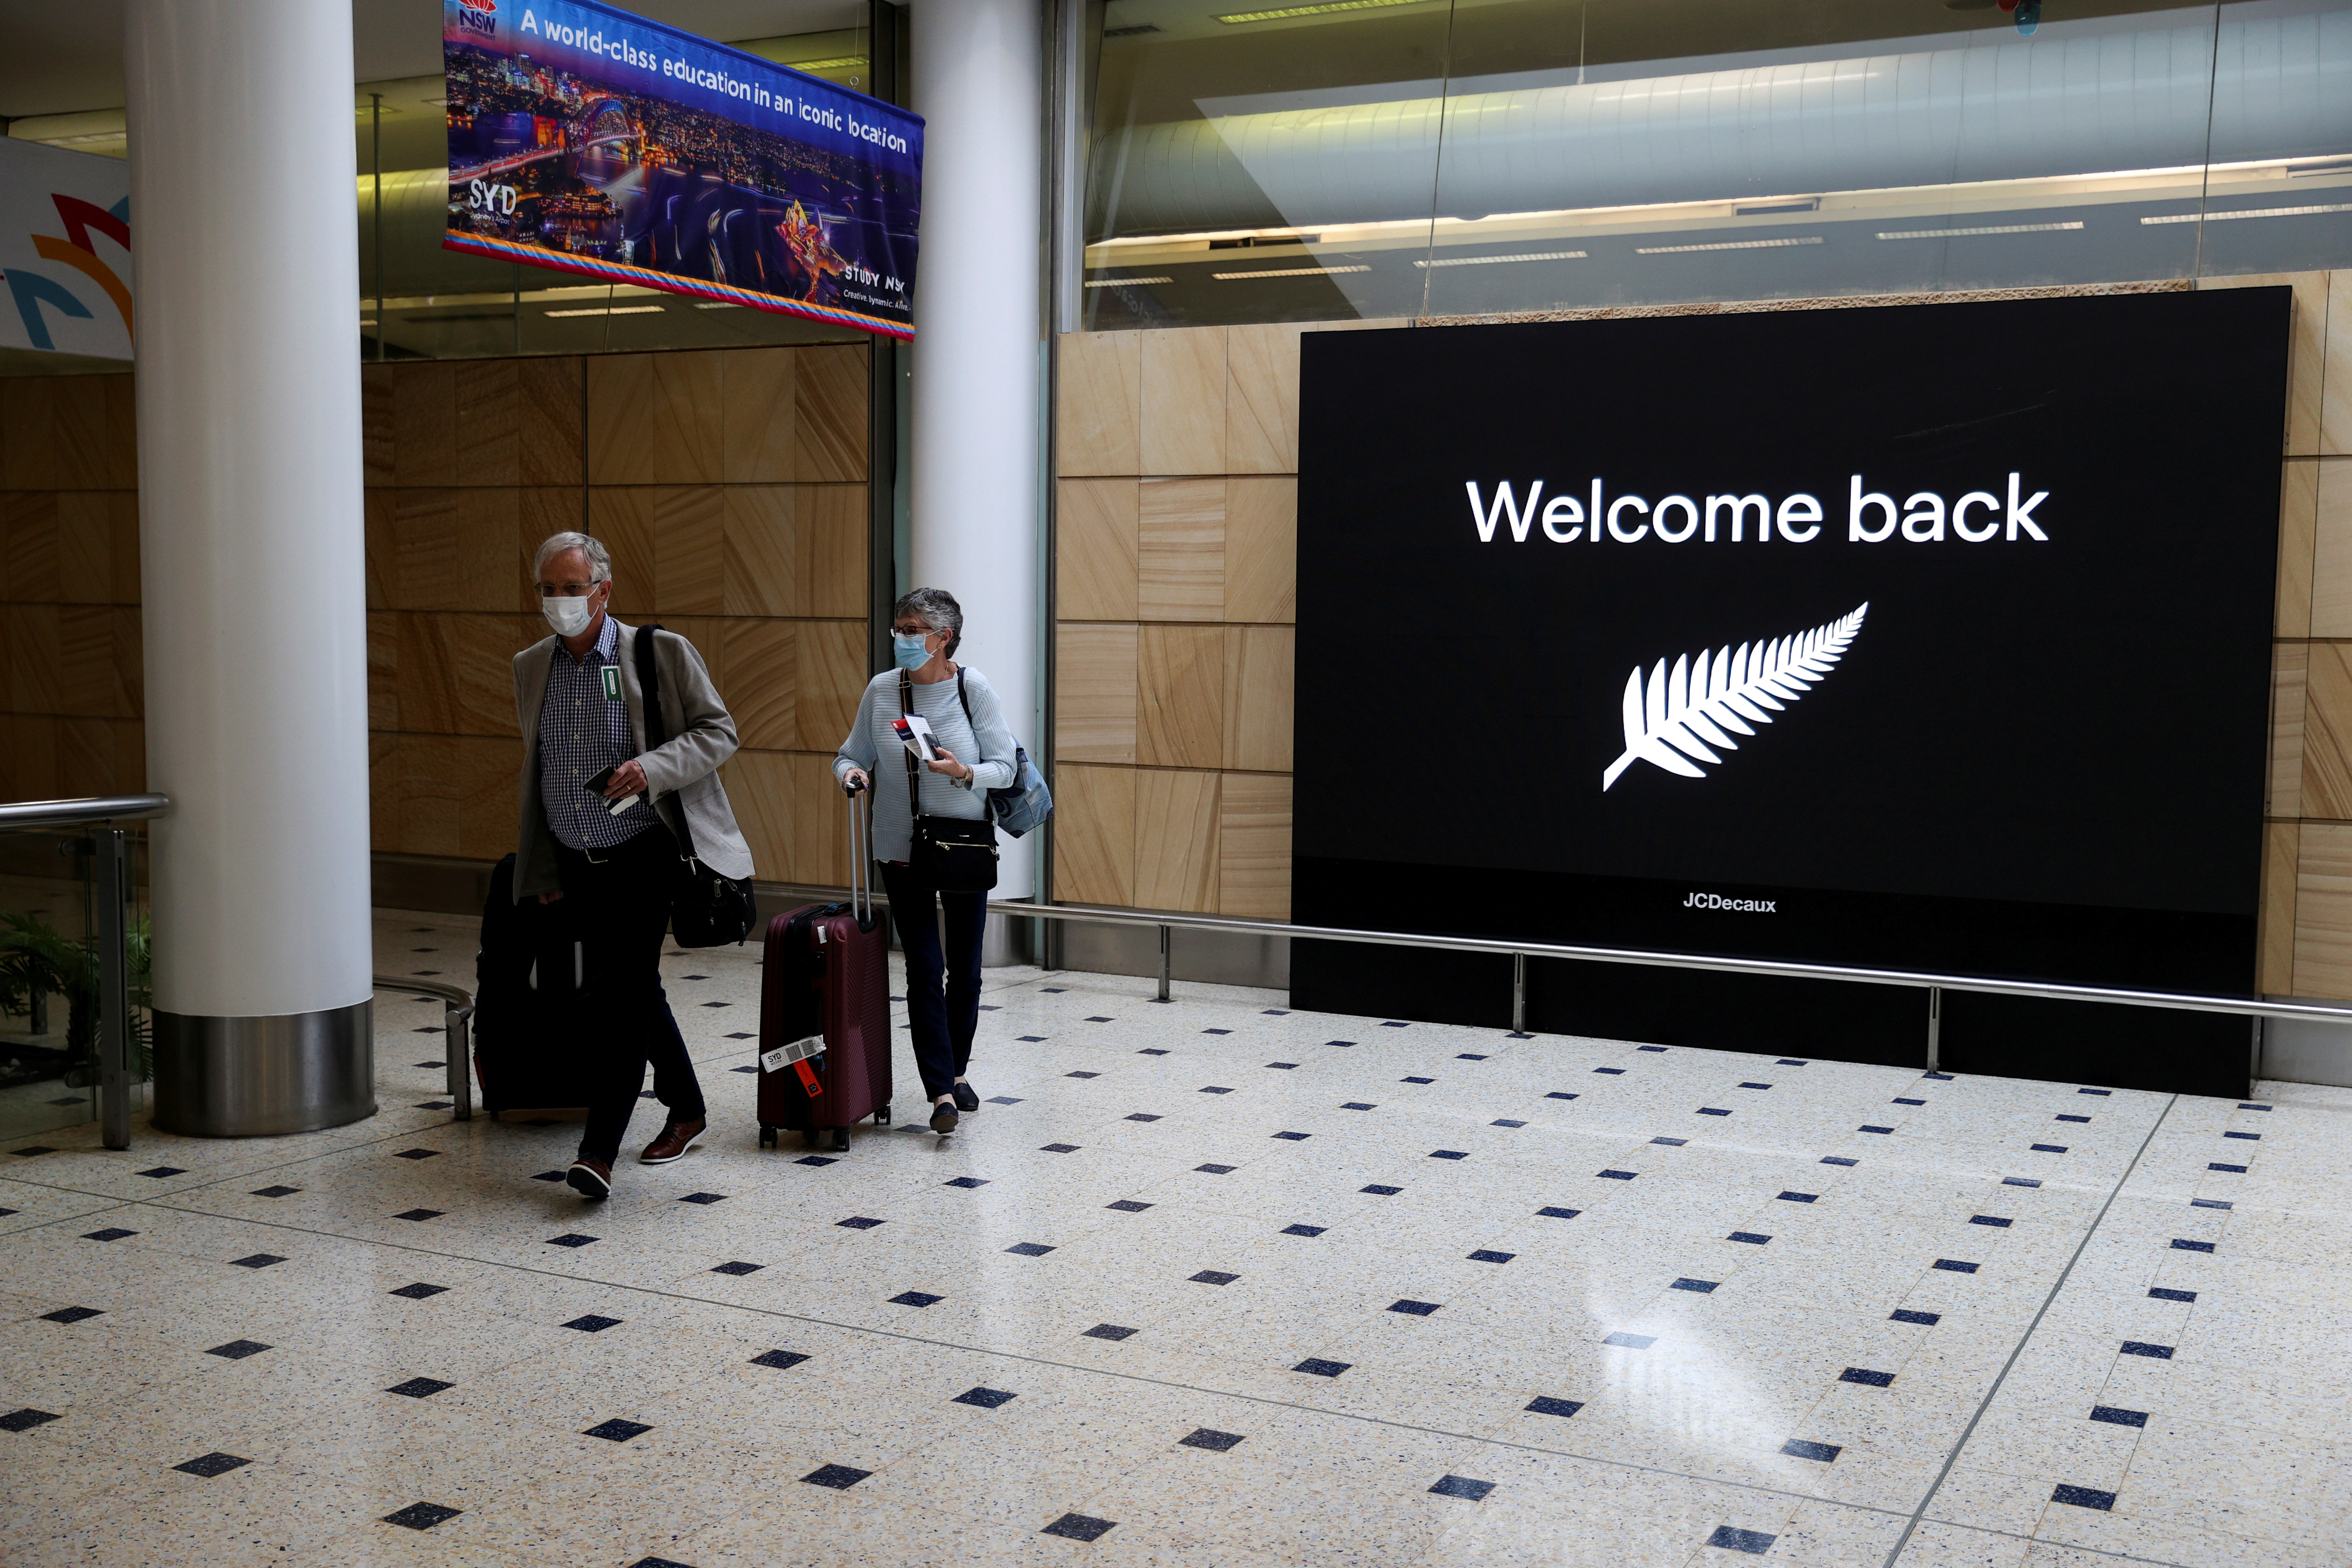 Passengers arrive from New Zealand after the Trans-Tasman travel bubble opened overnight, following an extended border closure due to the coronavirus disease (COVID-19) outbreak, at Sydney Airport in Sydney, Australia, October 16, 2020. REUTERS/Loren Elliott/File Photo